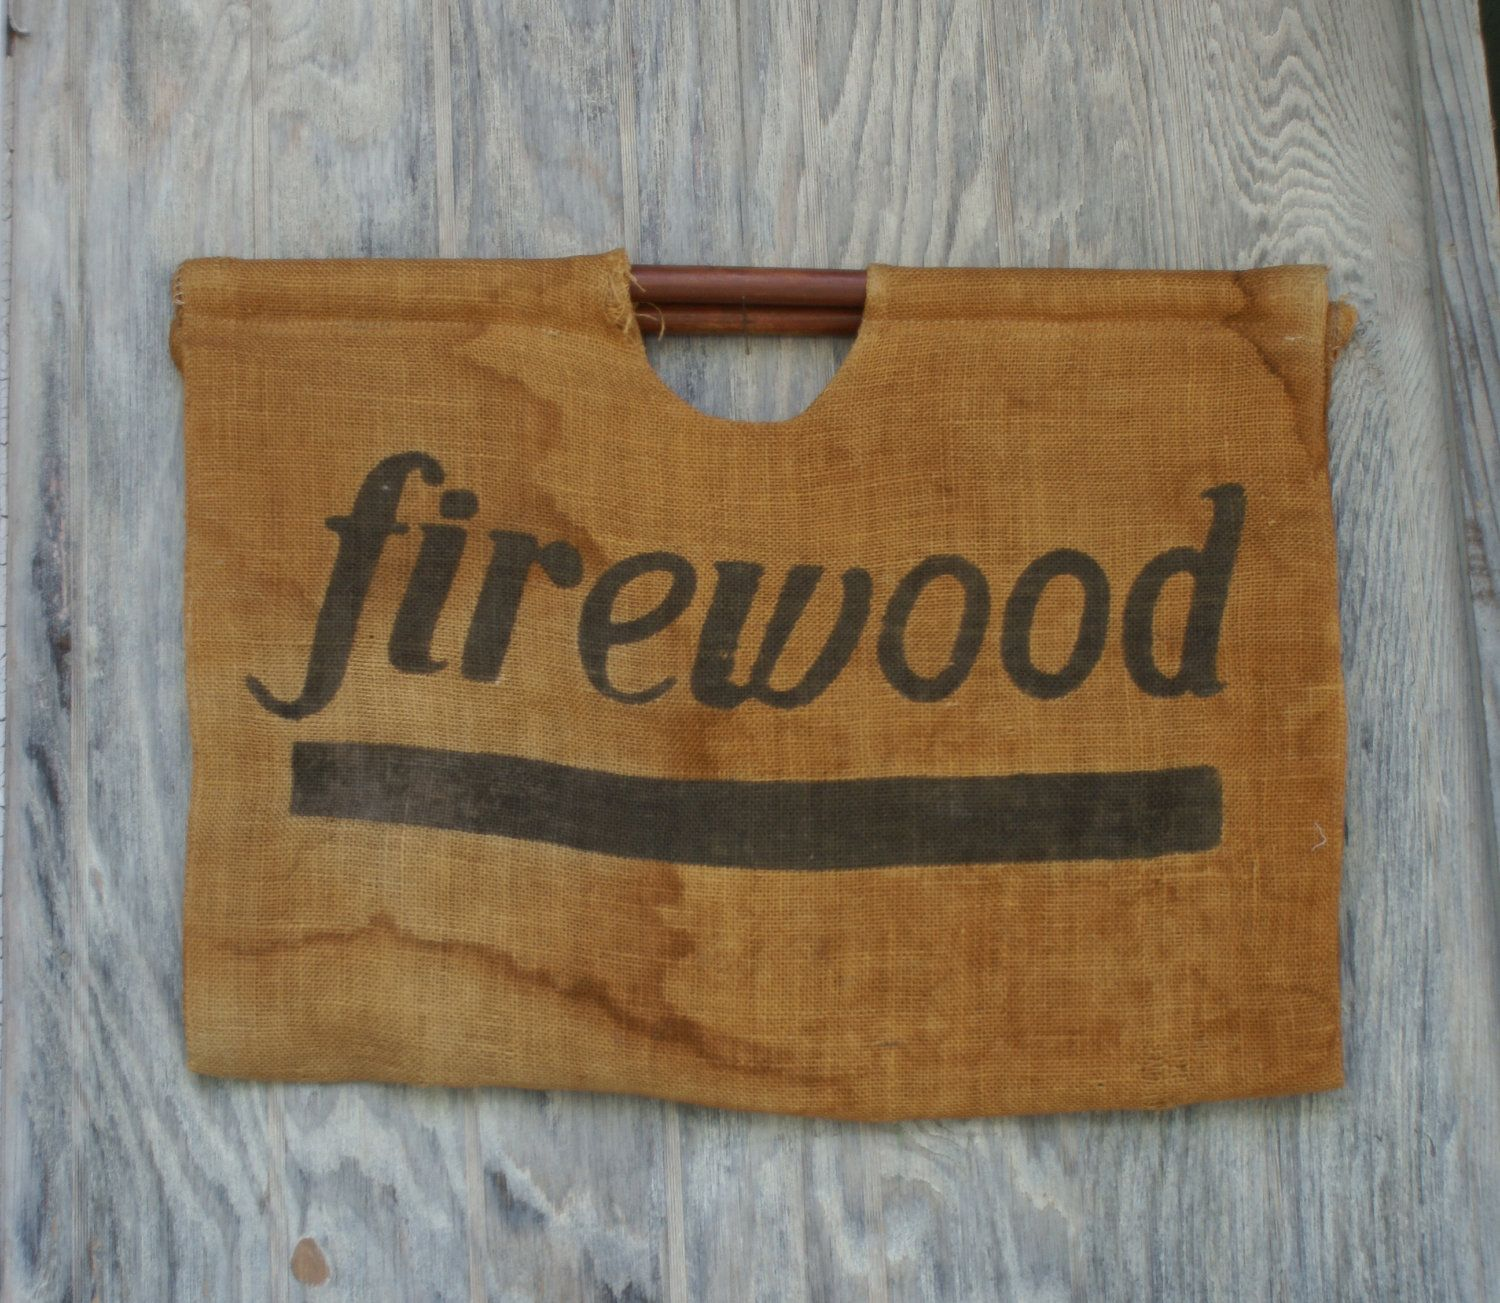 firewood carrier. another use for a potatoe or coffee sack